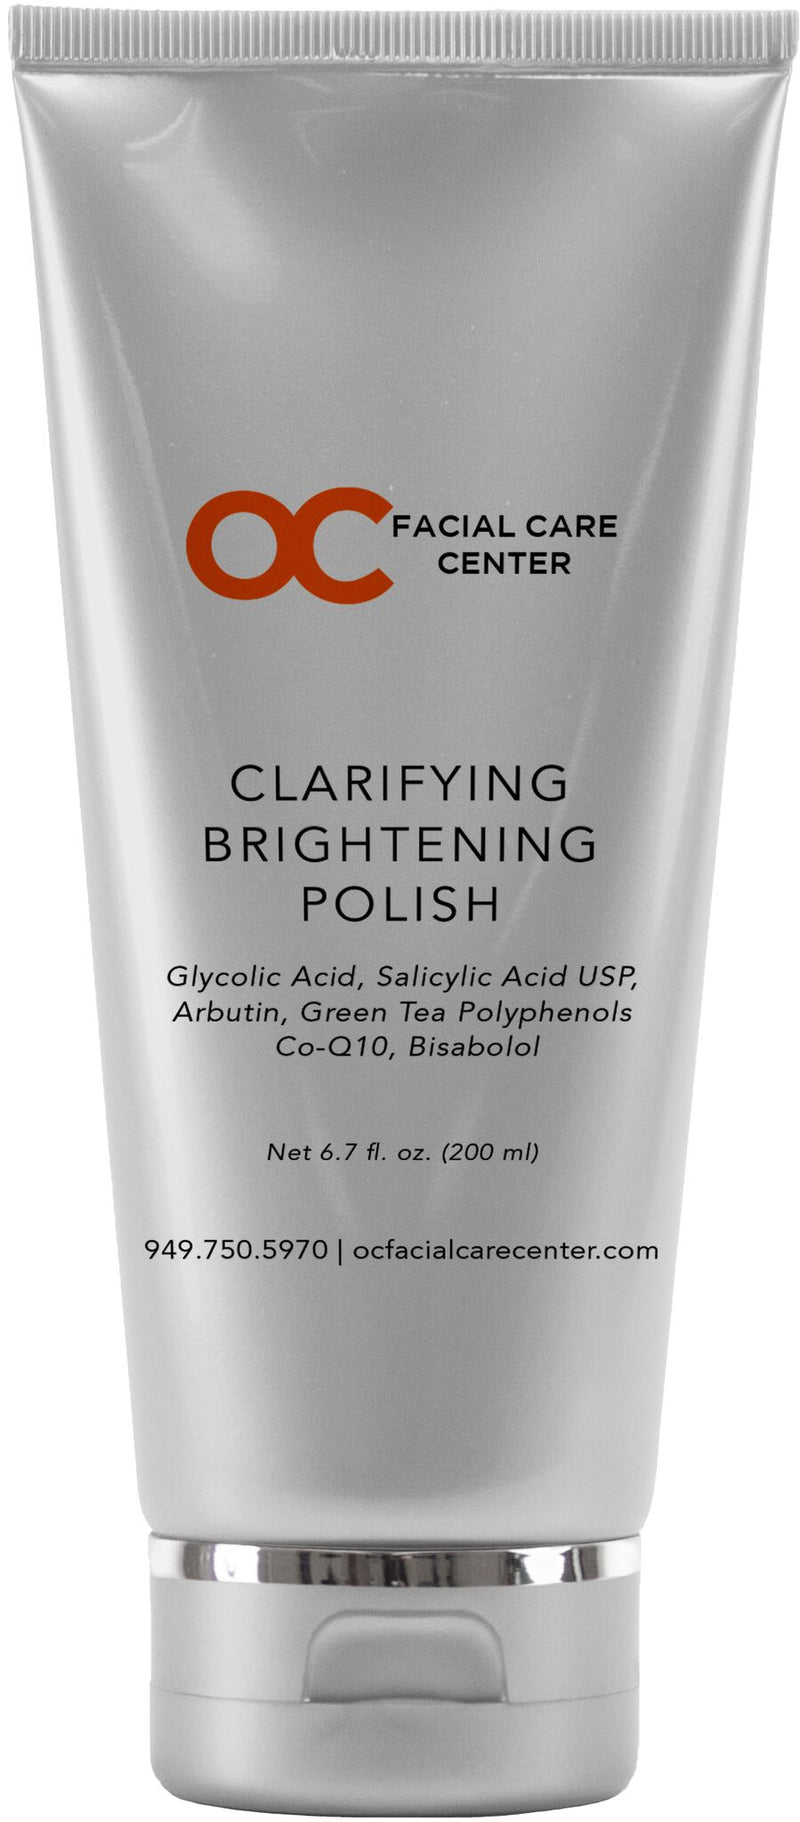 OC Facial Care Center Clarifying Brightening Polish